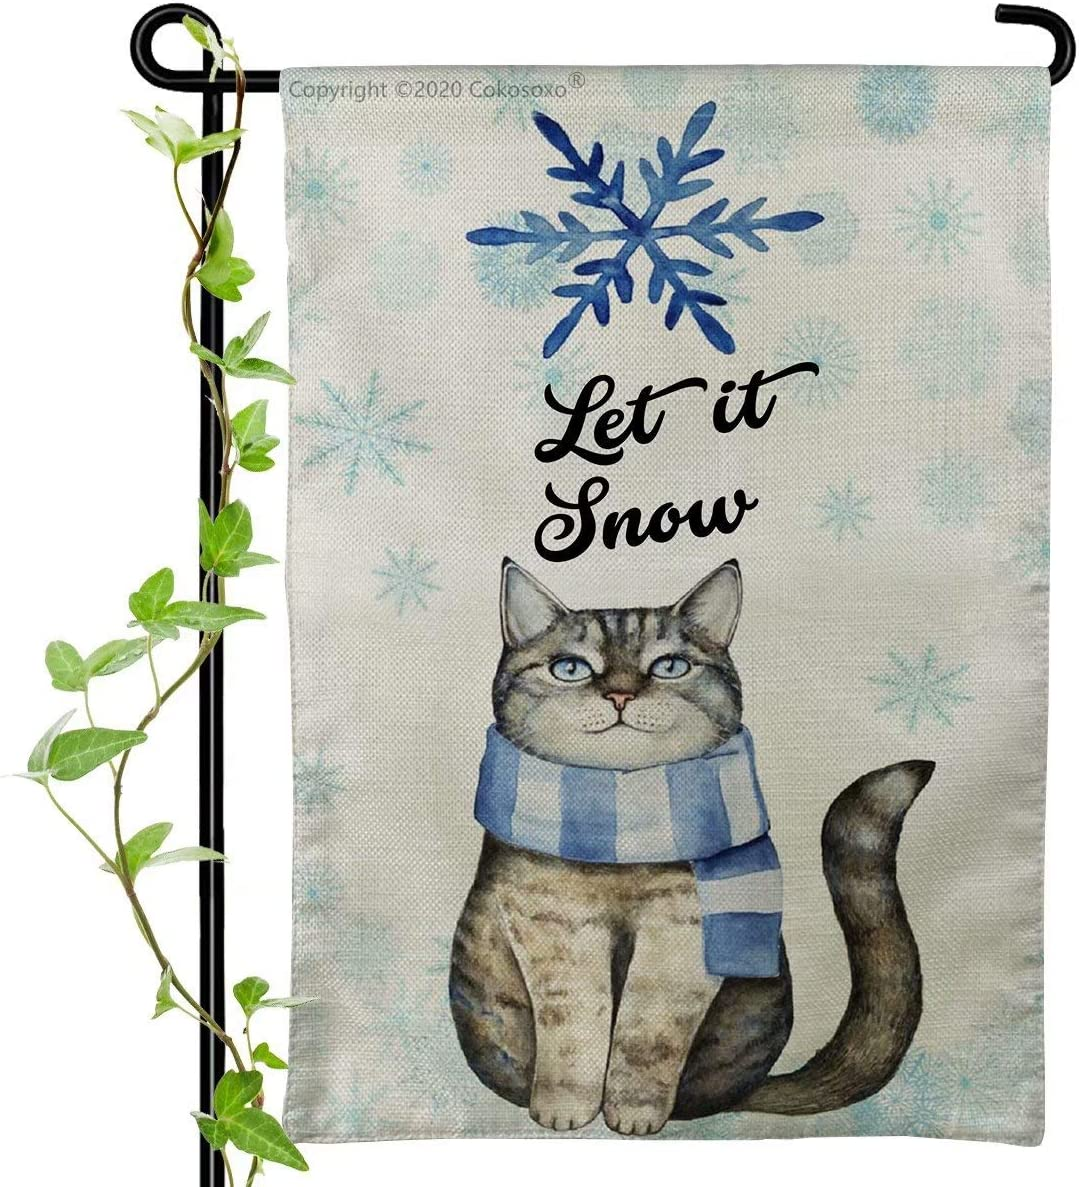 Garden Flag - Let It Snow - Cute Cat Kitten with Blue White Scarf Christmas Winter Yard Flags for Outside Home House Lawn Patio Outdoor Decorations